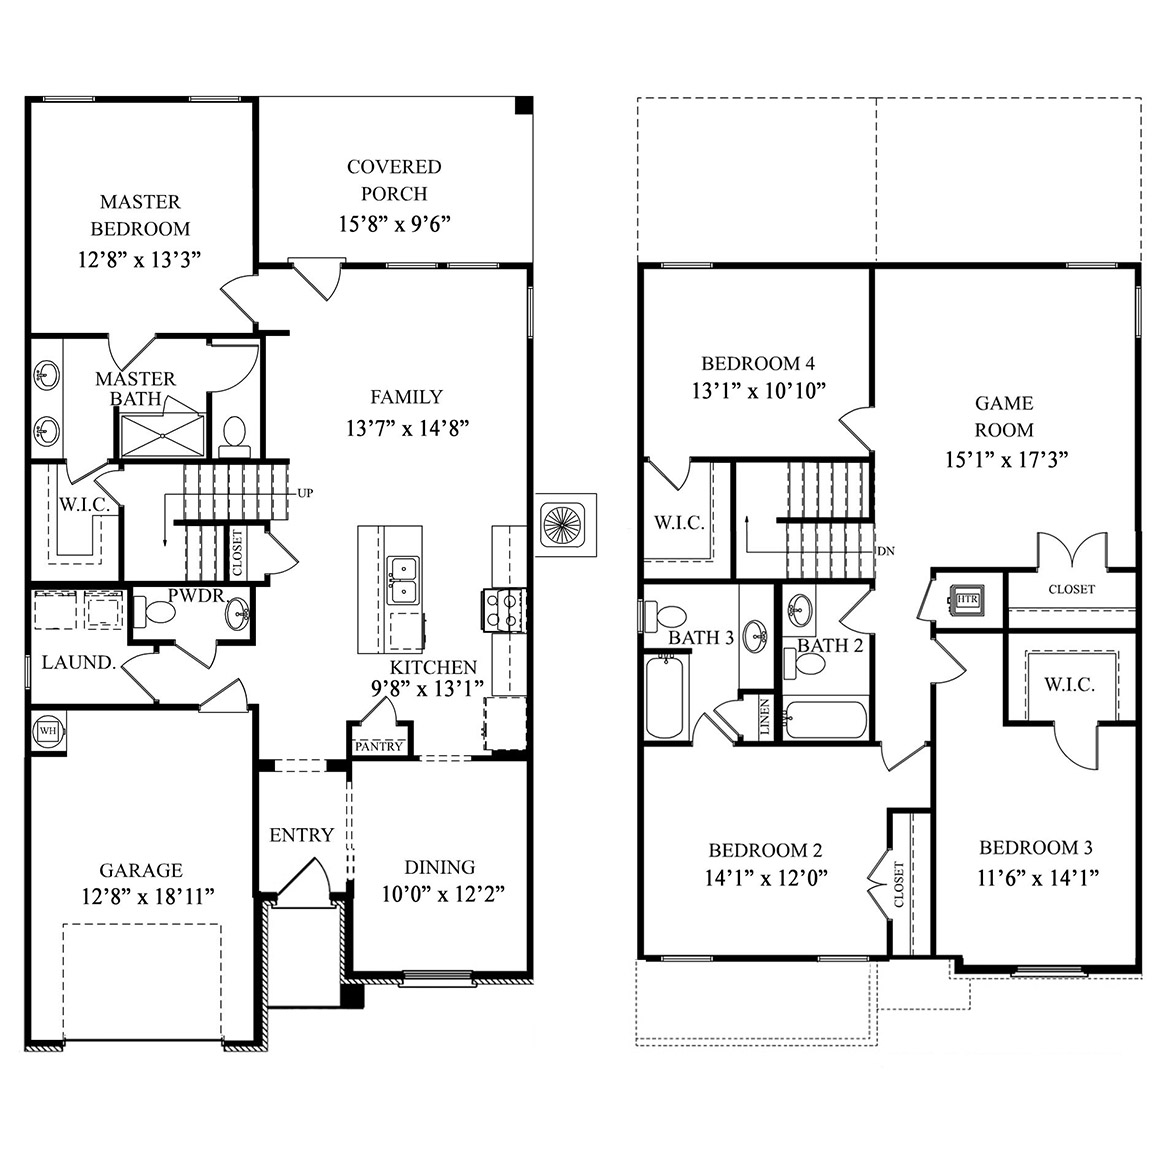 The Alabaster - New Home Floor Plan